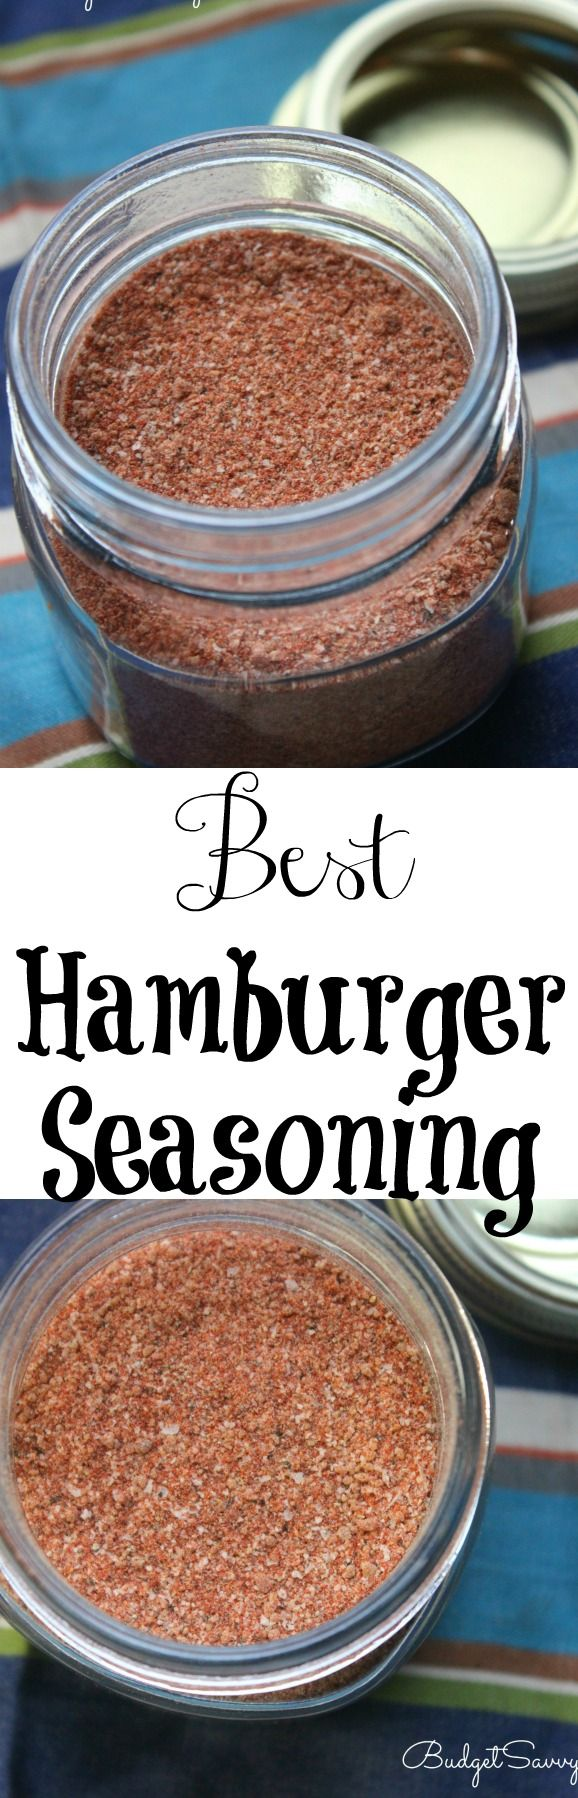 Best Hamburger Seasoning Recipe   1 teaspoon paprika 1 teaspoon ground black pepper ½ teaspoon salt ½ teaspoon dark brown sugar ⅛ teaspoon garlic powder ⅛ teaspoon onion powder ⅛ teaspoon ground cayenne pepper Instructions Combine all ingredients together. Sprinkle seasoning on burgers before cooking